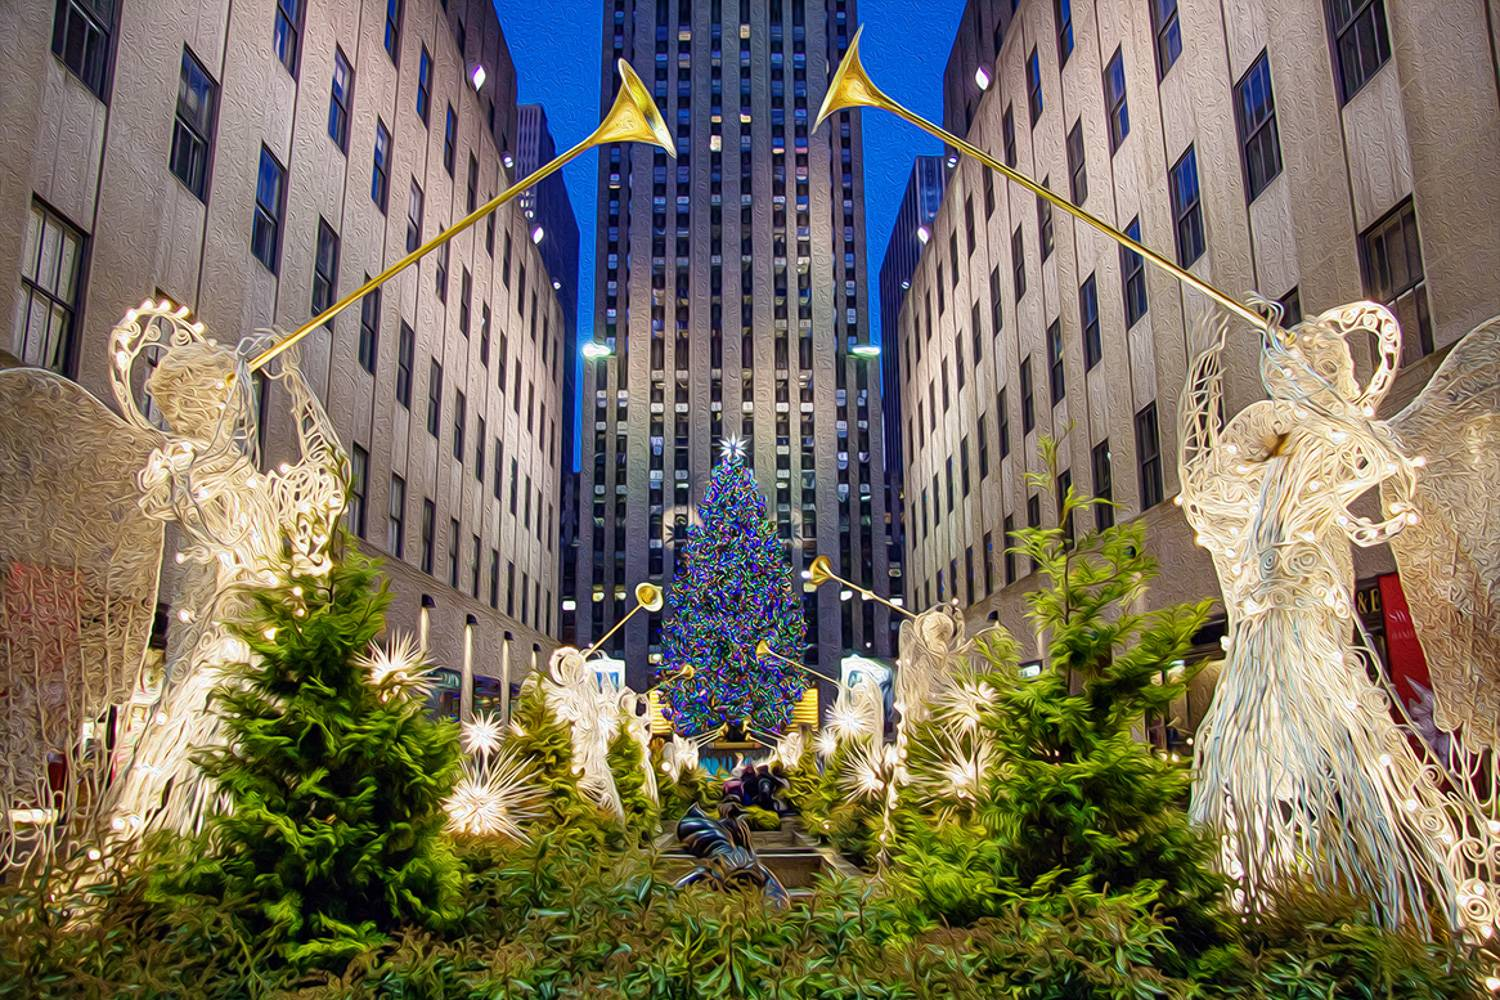 Image of Rockefeller Christmas Tree at the end of a procession of angels with trumpets